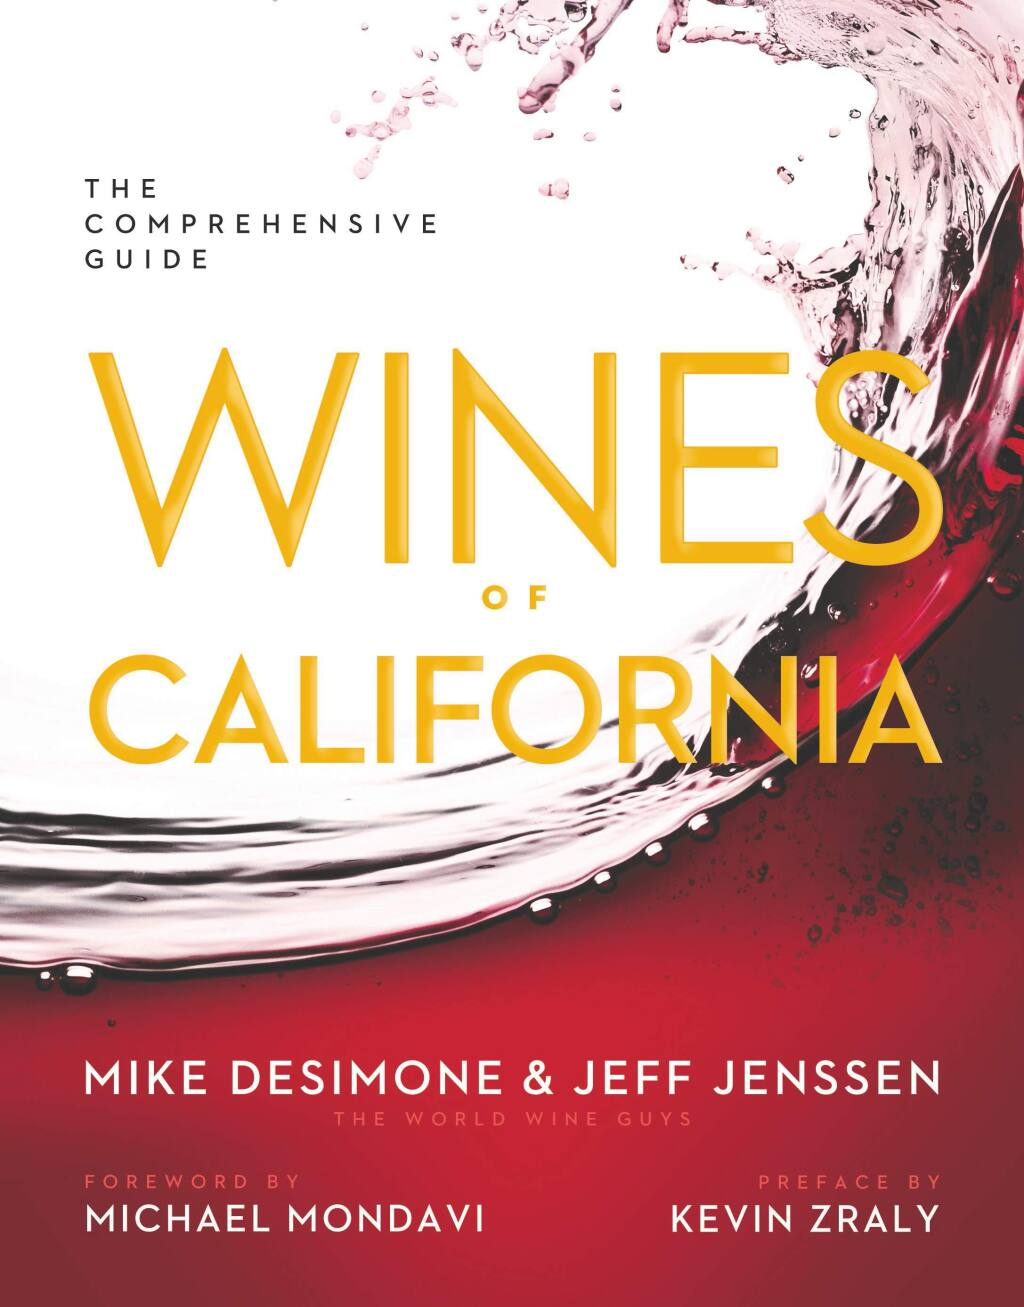 (Reprinted with permission from Wines of California © 2014 by Mike DeSimone and Jeff Jenssen, Sterling Epicure, an imprint of Sterling Publishing Co., IncThe Comprehensive Guide Wines of California wine book.)